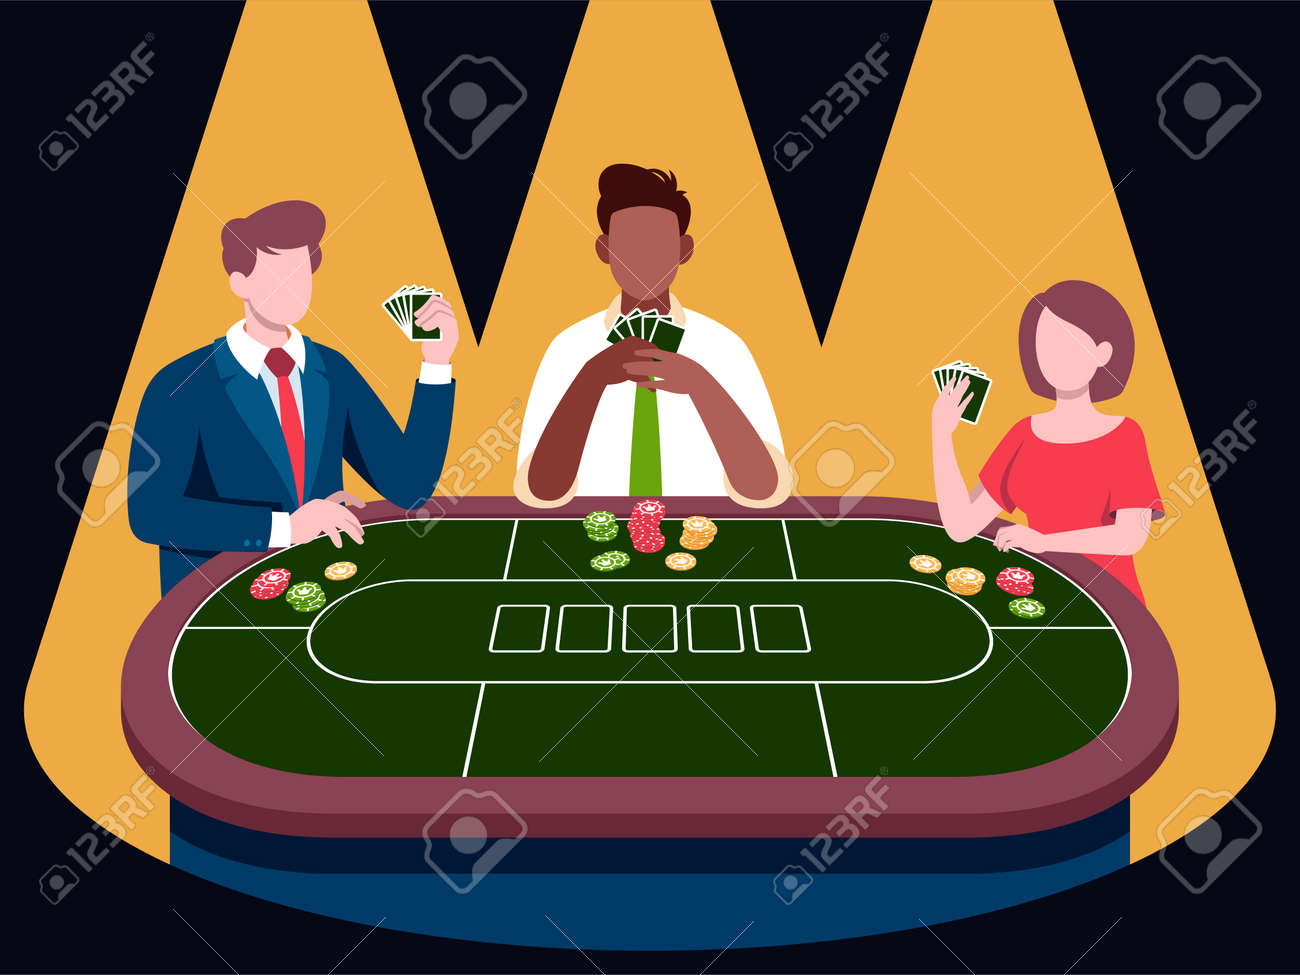 Poker player tournament illustrations in flat vector - 163221842